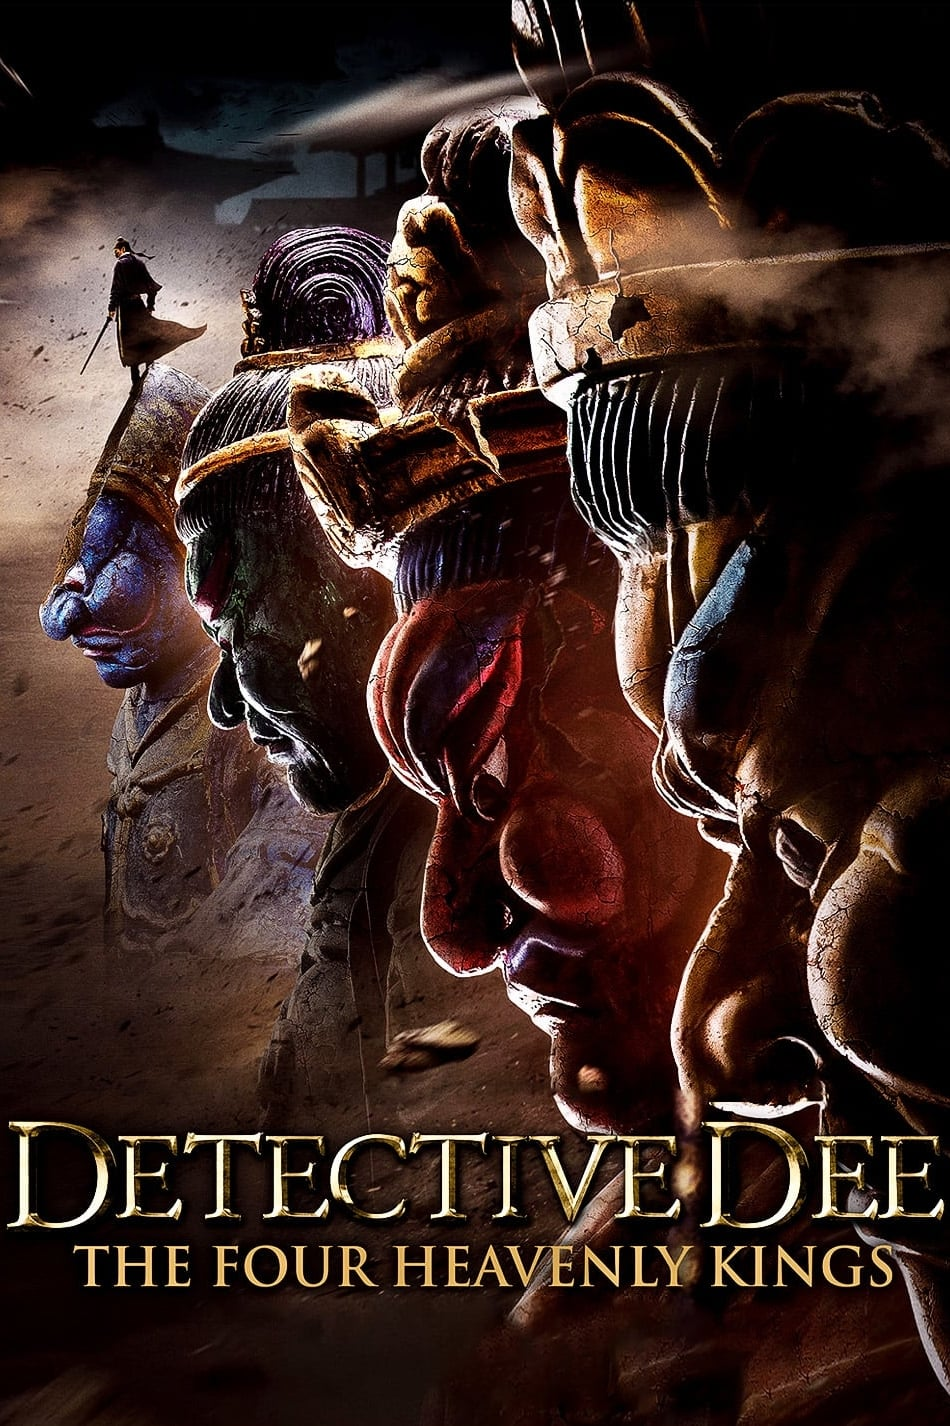 image for Detective Dee: The Four Heavenly Kings